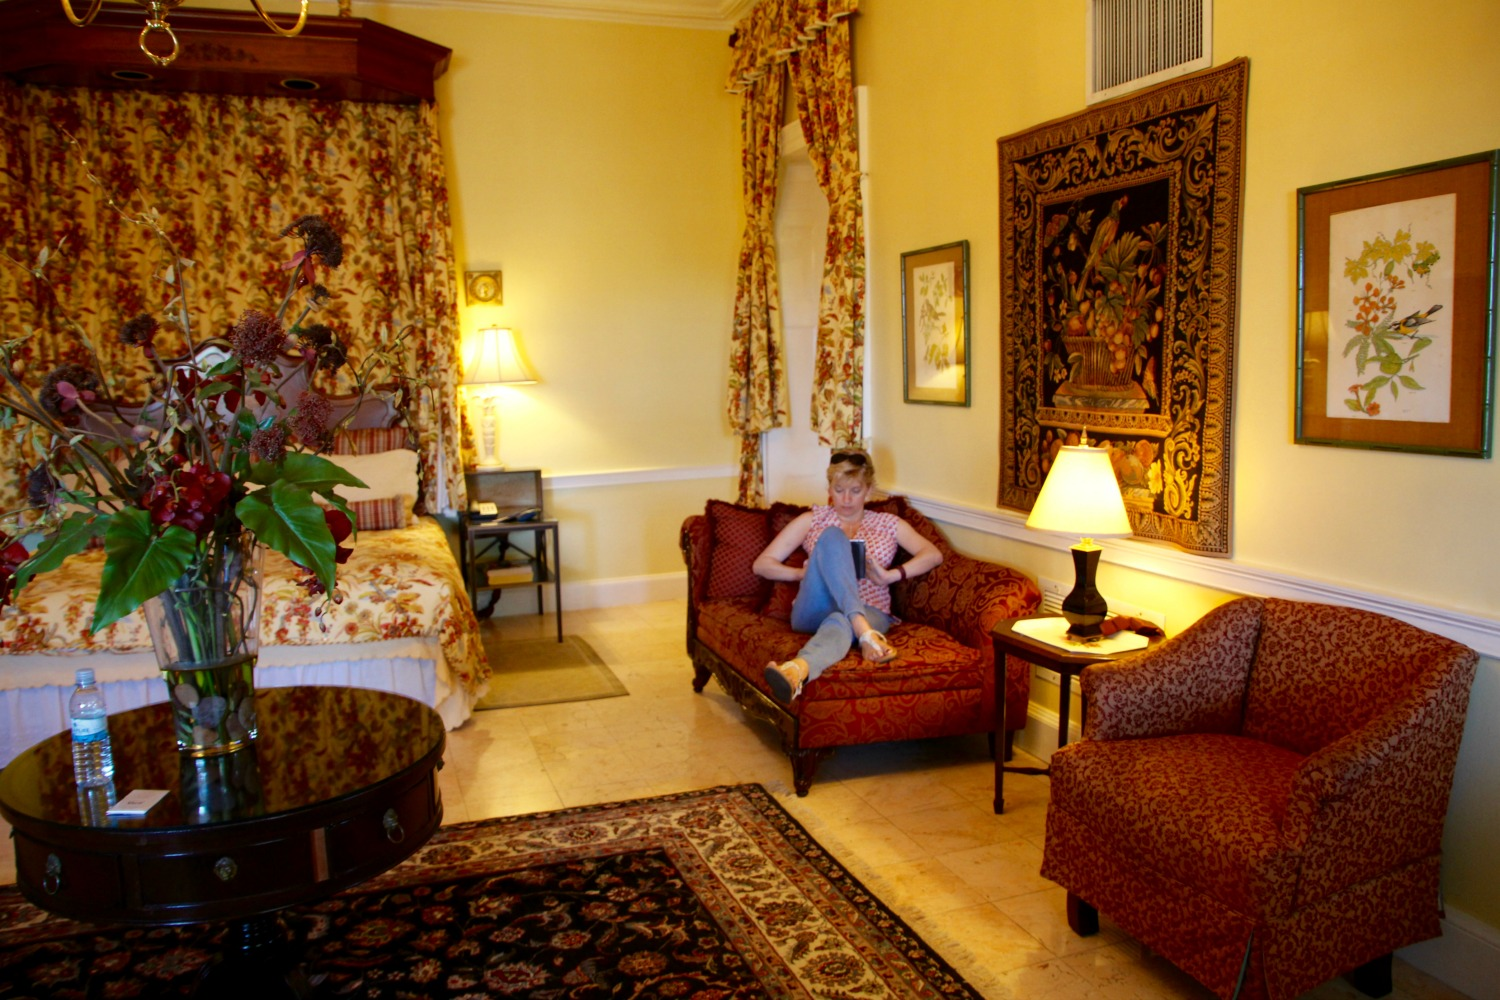 The Baillou Suite at The GreyCliff Hotel